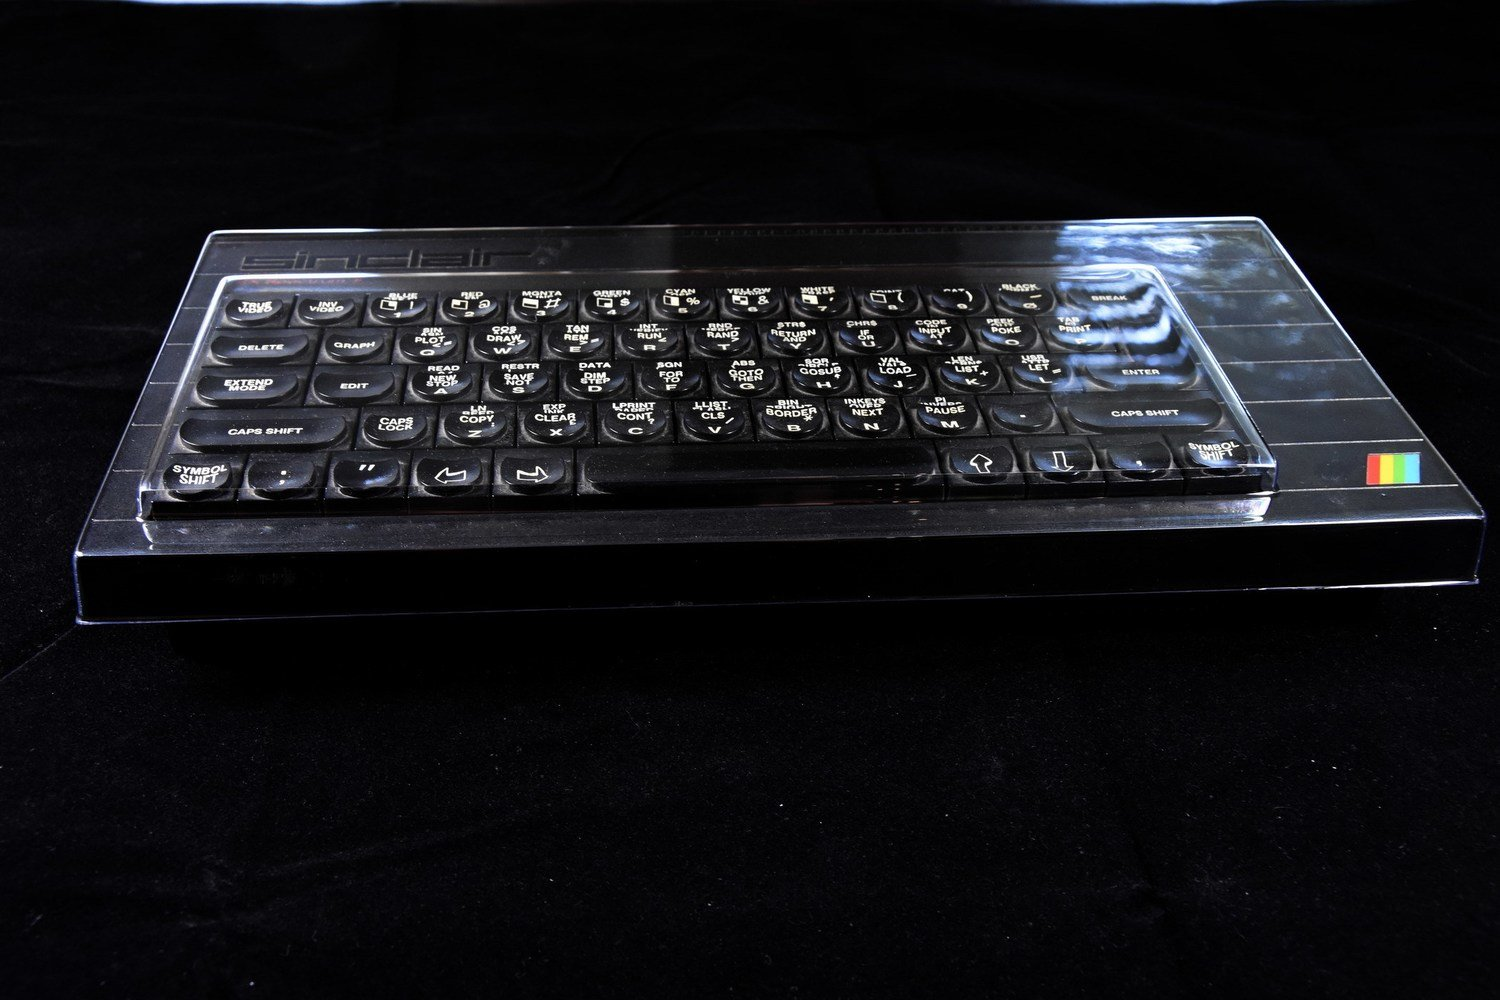 ZX Spectrum+ dust cover